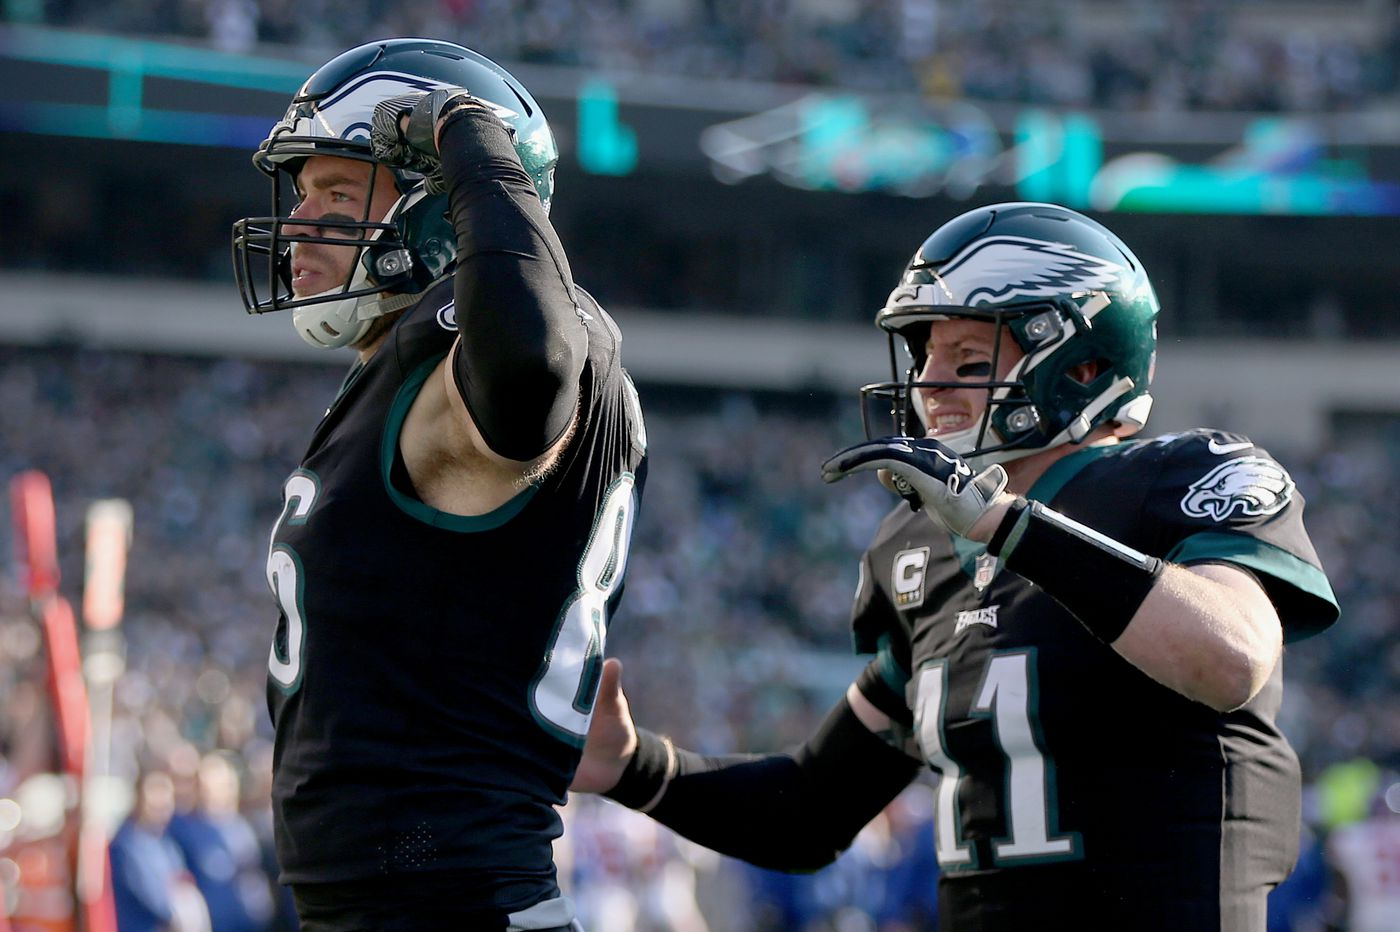 Carson Wentz's contract extension with Eagles gets high marks from teammates and analysts alike